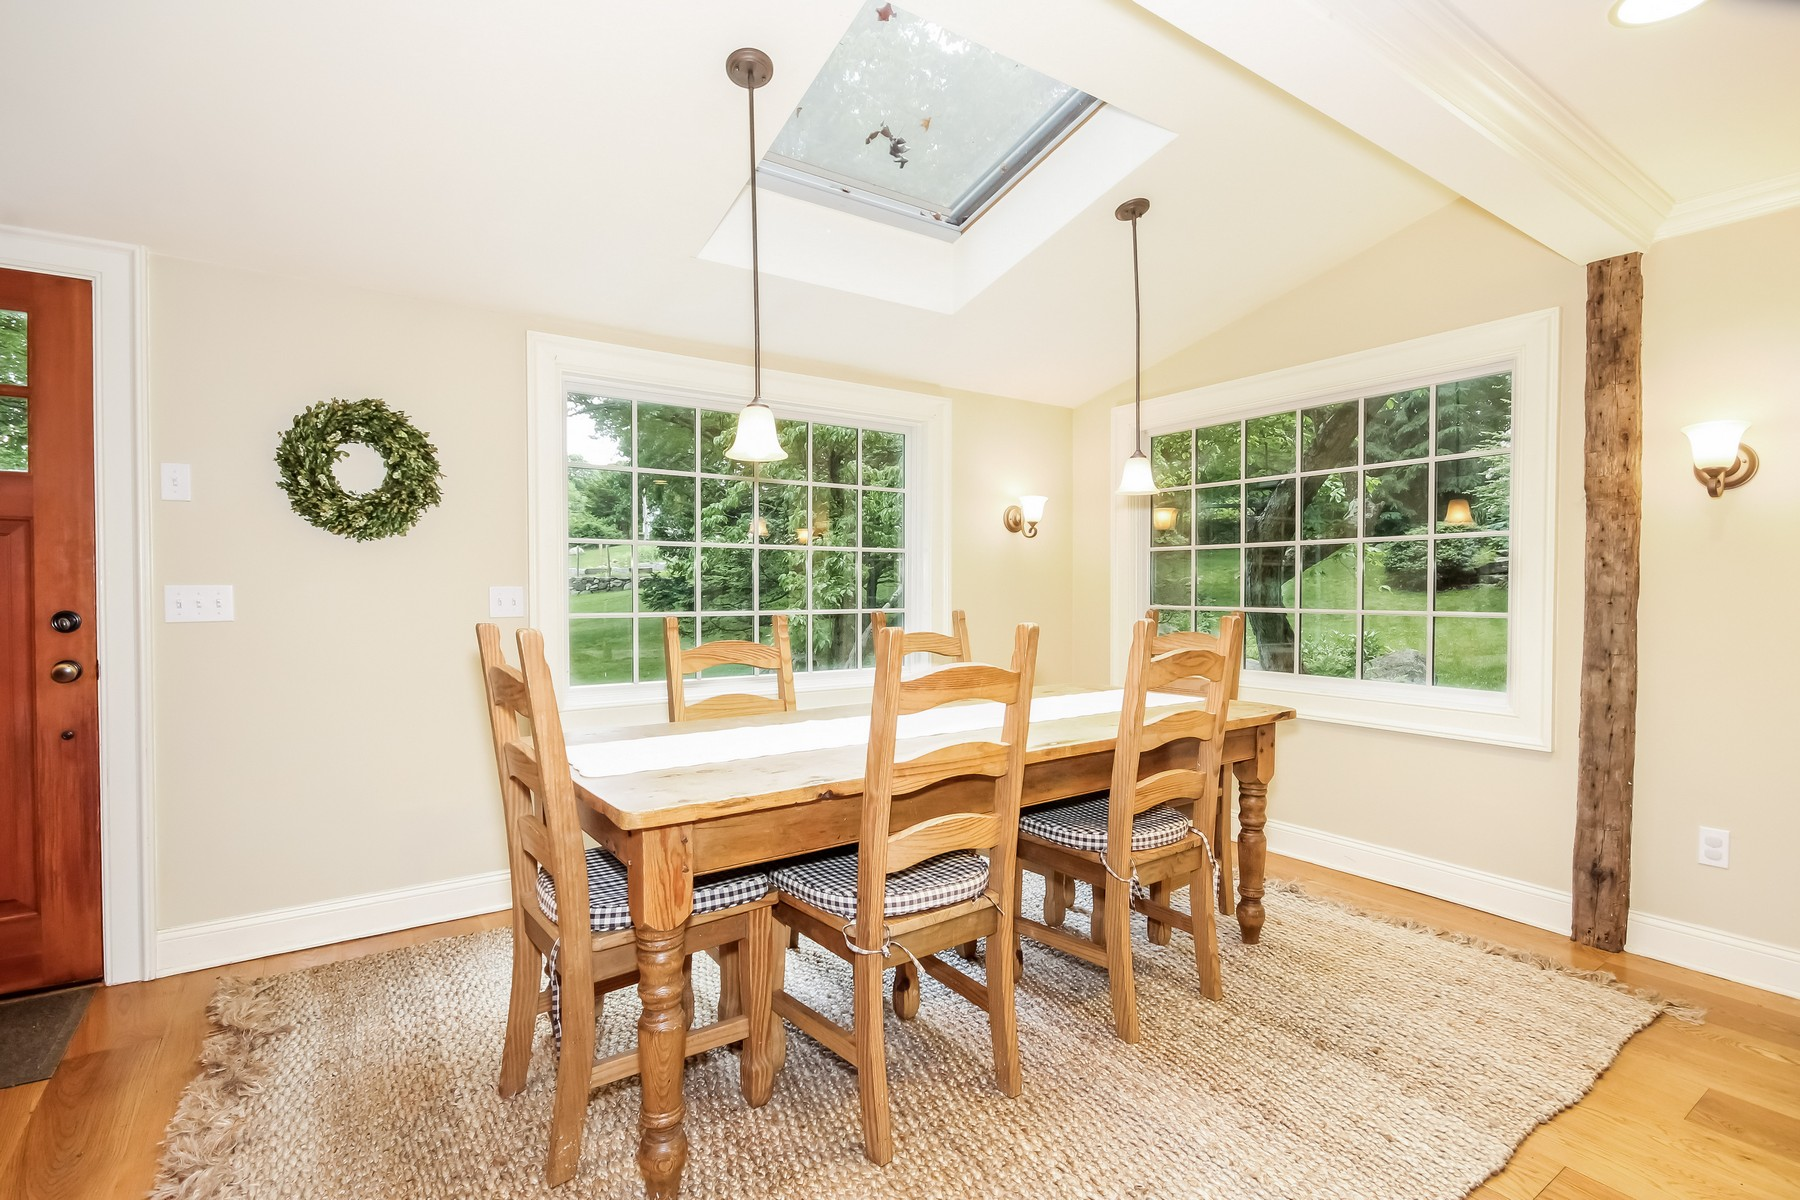 Single Family Home for Sale at Antique Colonial 23 Church Street Wilton, Connecticut, 06897 United States